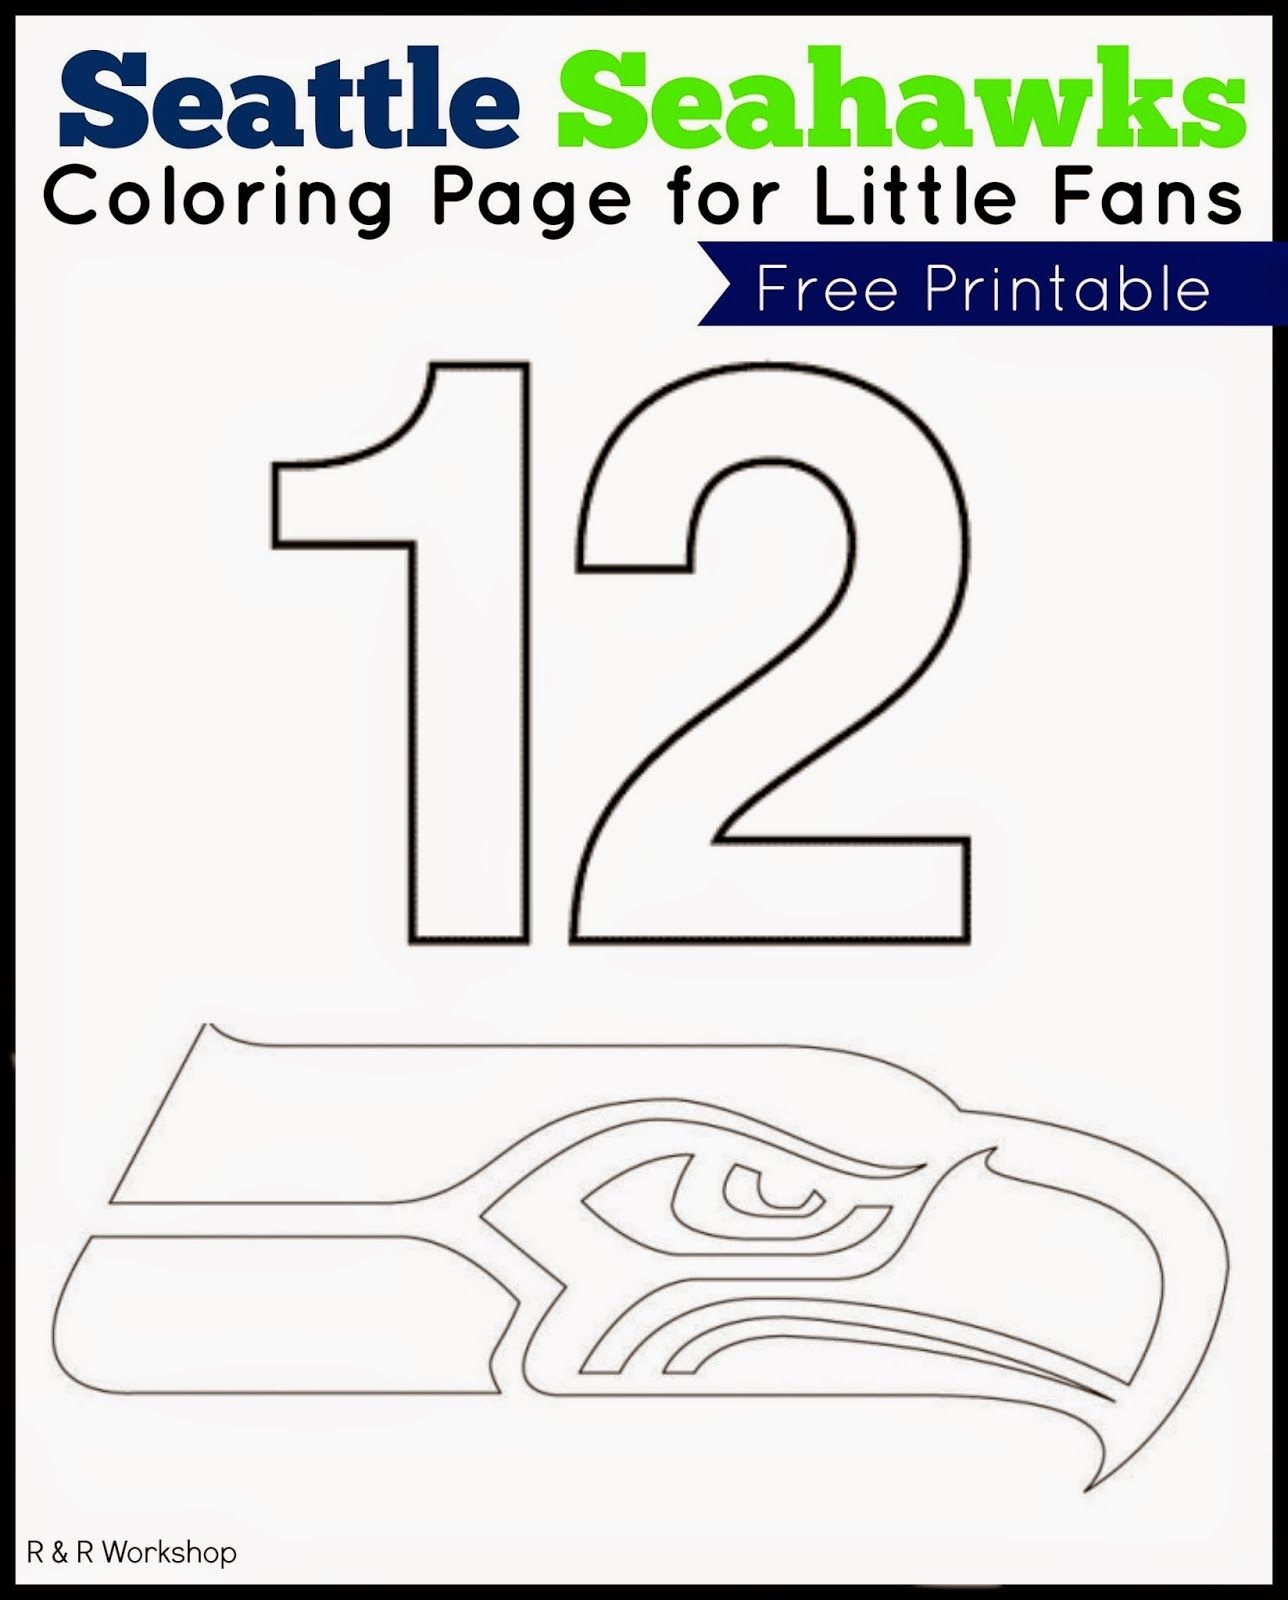 Free Printable Seahawks Coloring Pages   Free Printable